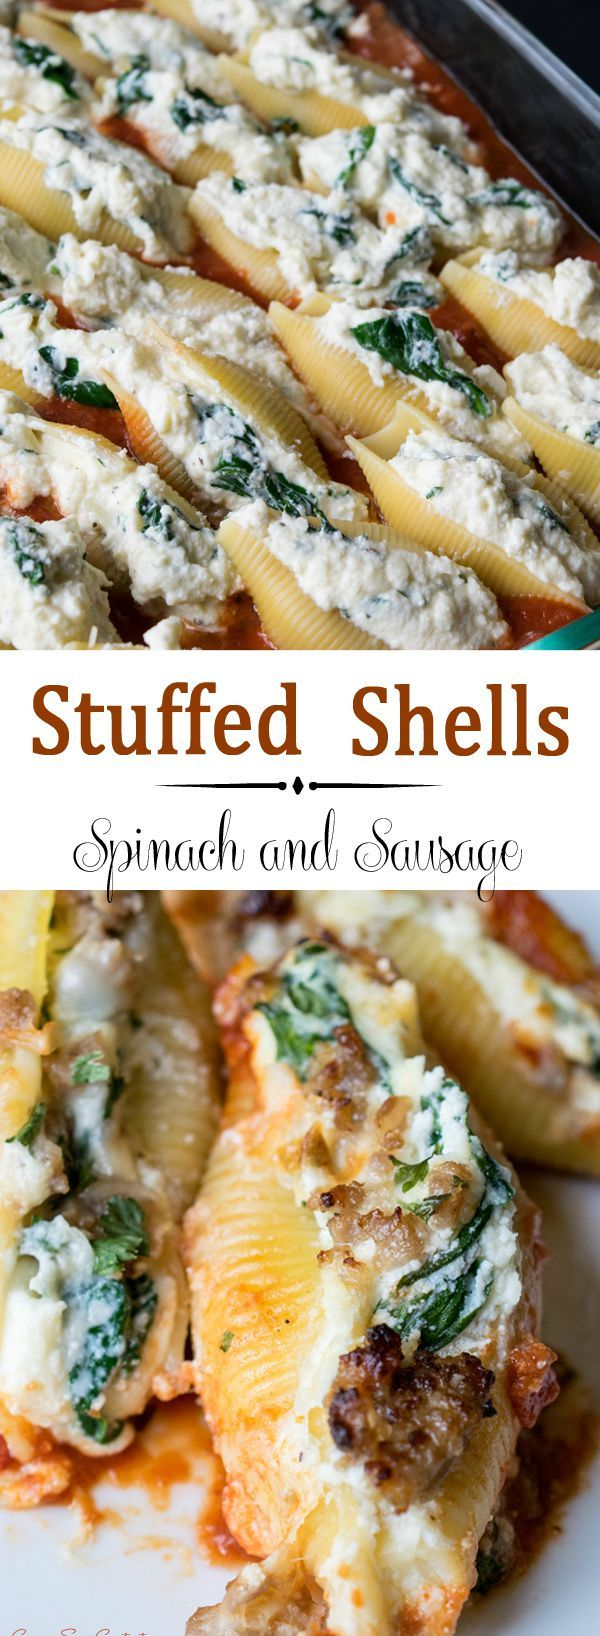 Easy Cheesy Stuffed Shells are a delicious main deal for the whole family. This recipe combines ricotta, mozzarella, and parmesan cheeses, and spinach stuffed into the shells. A spicy layer of Hot or Mild Italian sausage completes the meal. A family favorite Italian dinner!